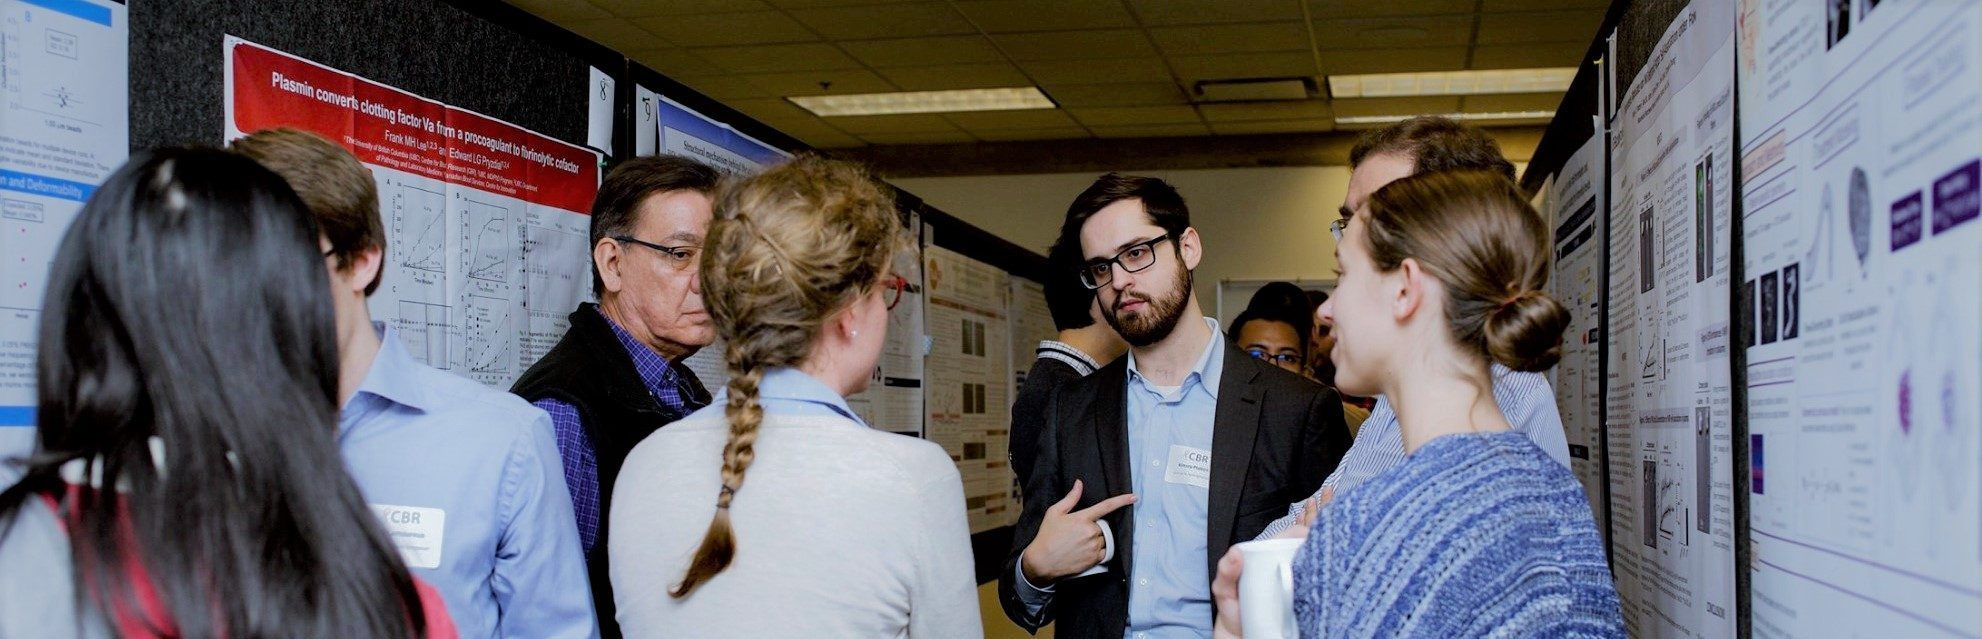 Scientists presenting their posters and chatting with attendees at the 2019 Norman Bethune Symposium